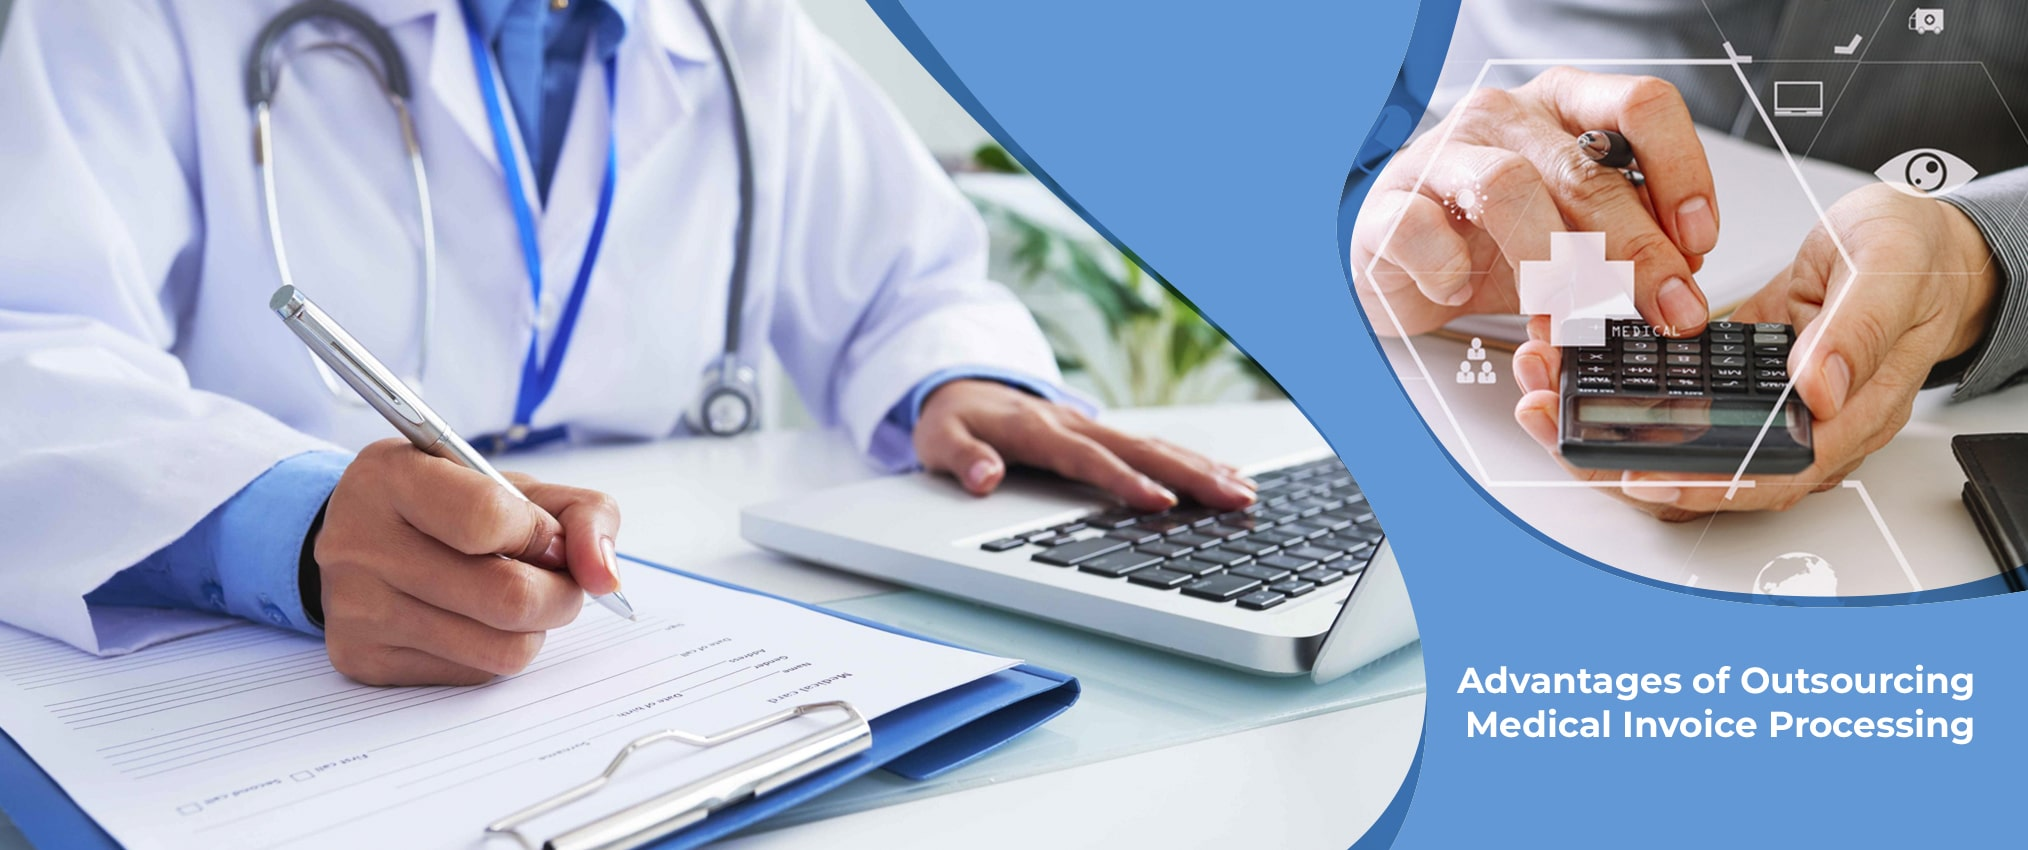 outsourcing medical invoice processing